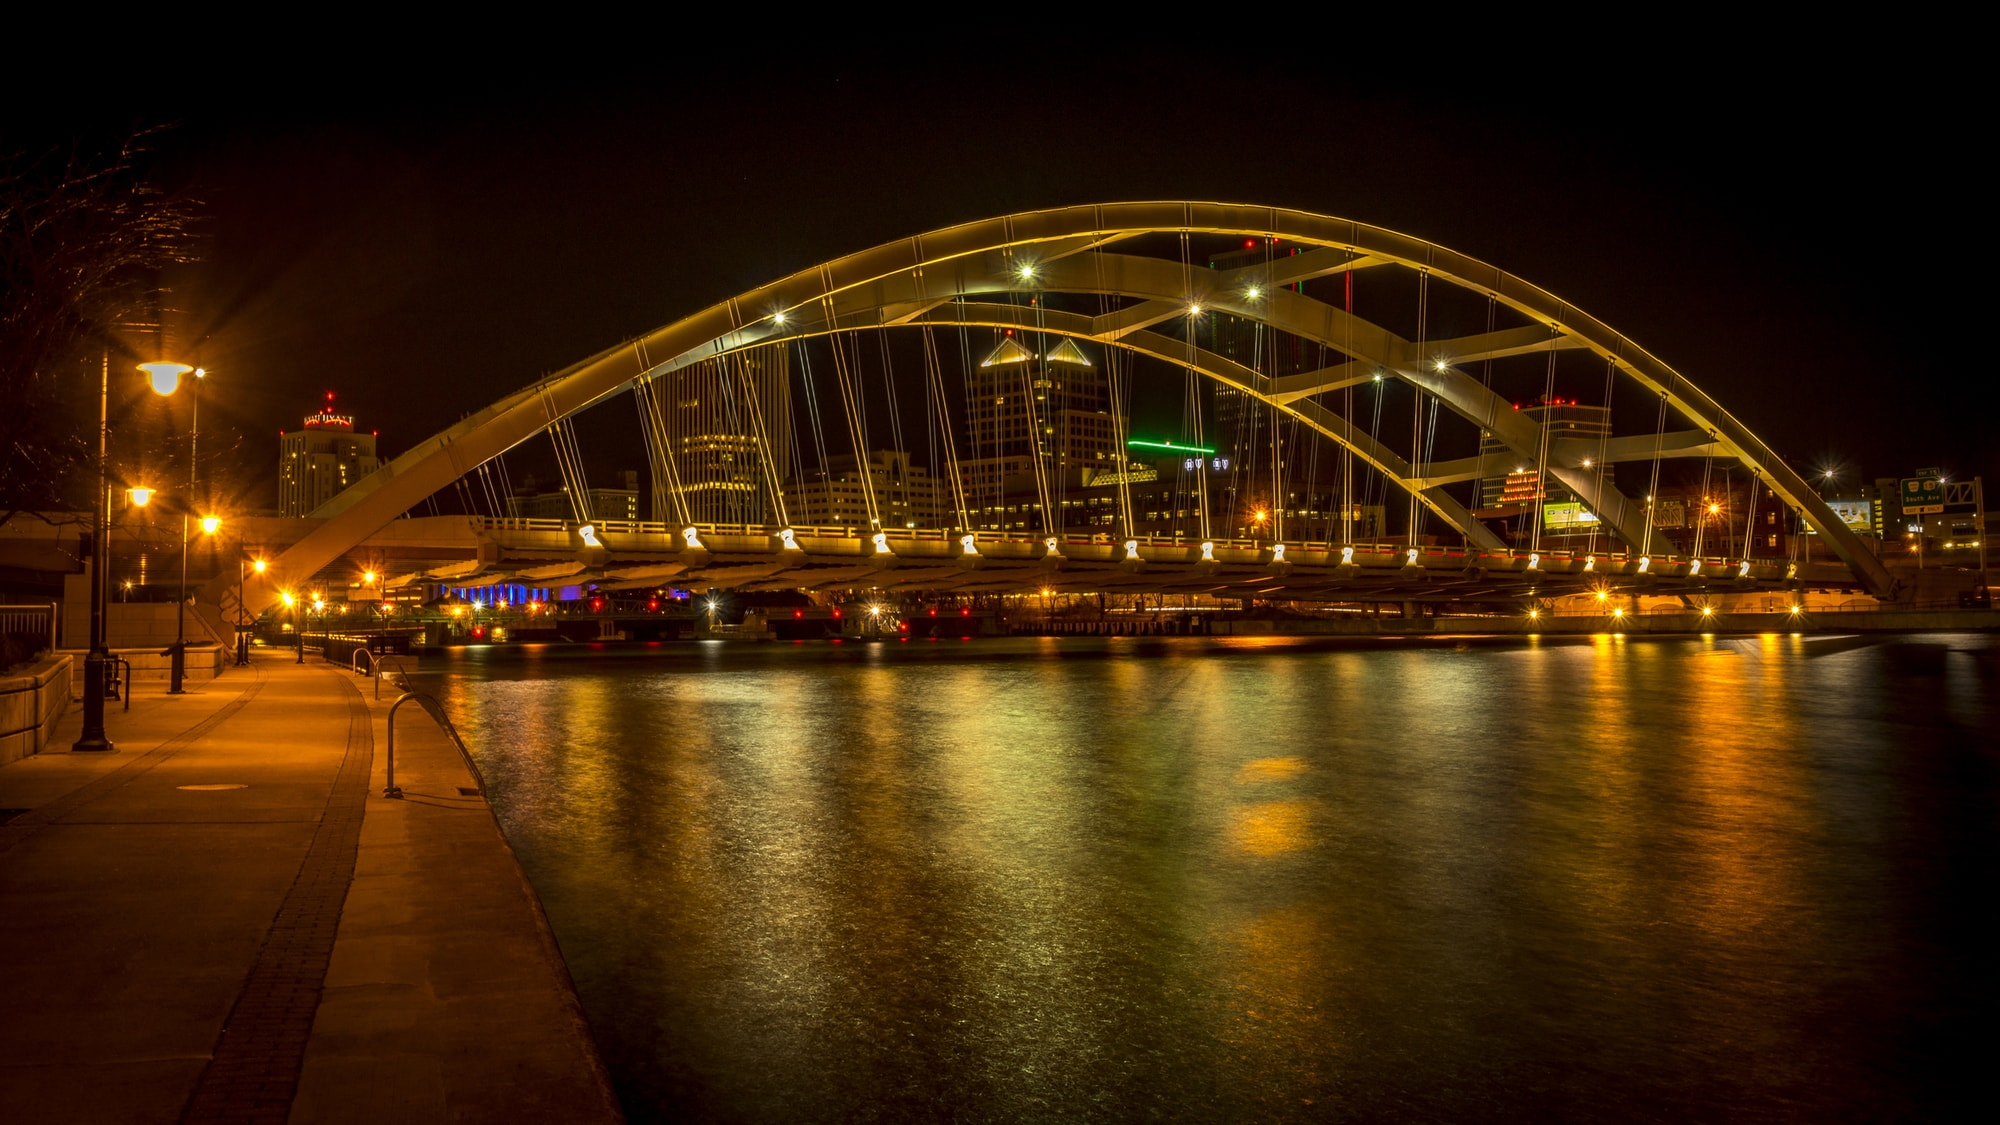 Susan B. Anthony/Frederick Douglass Bridge in Rochester, NY | OLEDWorks